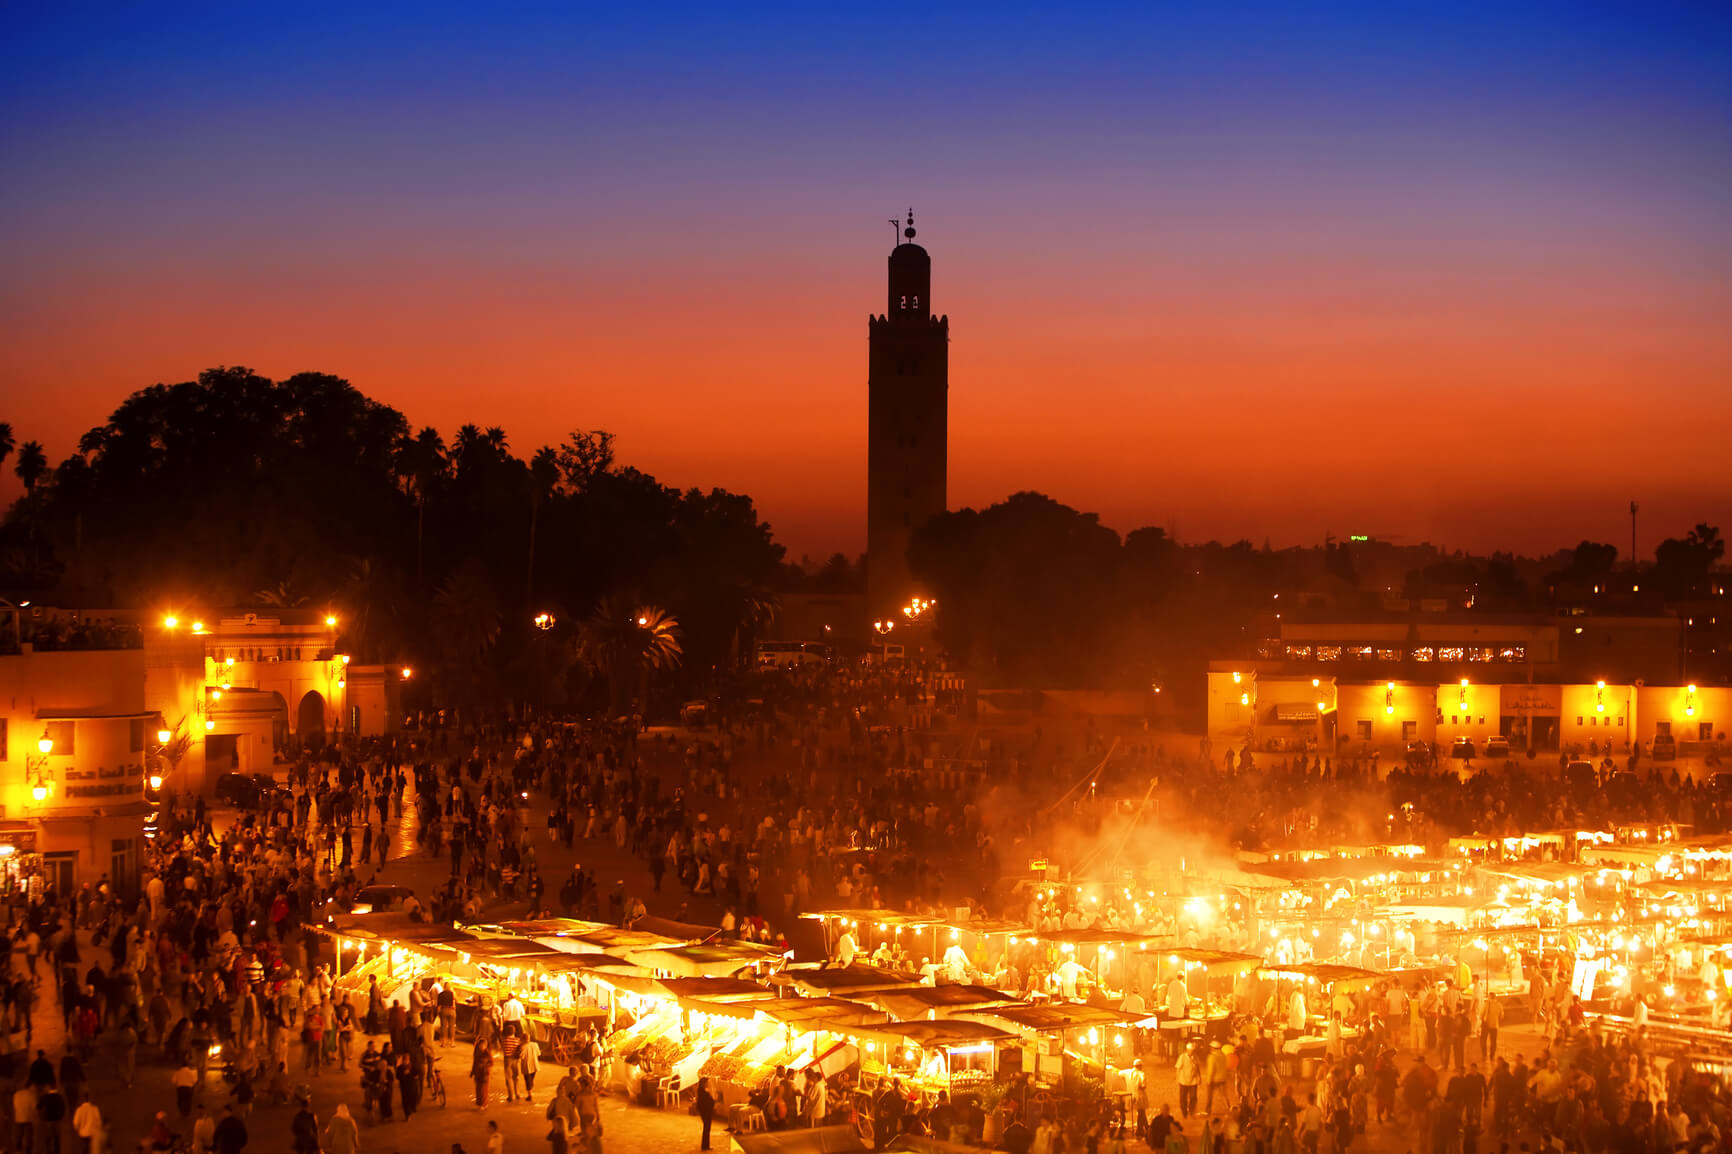 Orlando, Florida to Marrakesh, Morocco for only $545 roundtrip (Jan-Feb dates)